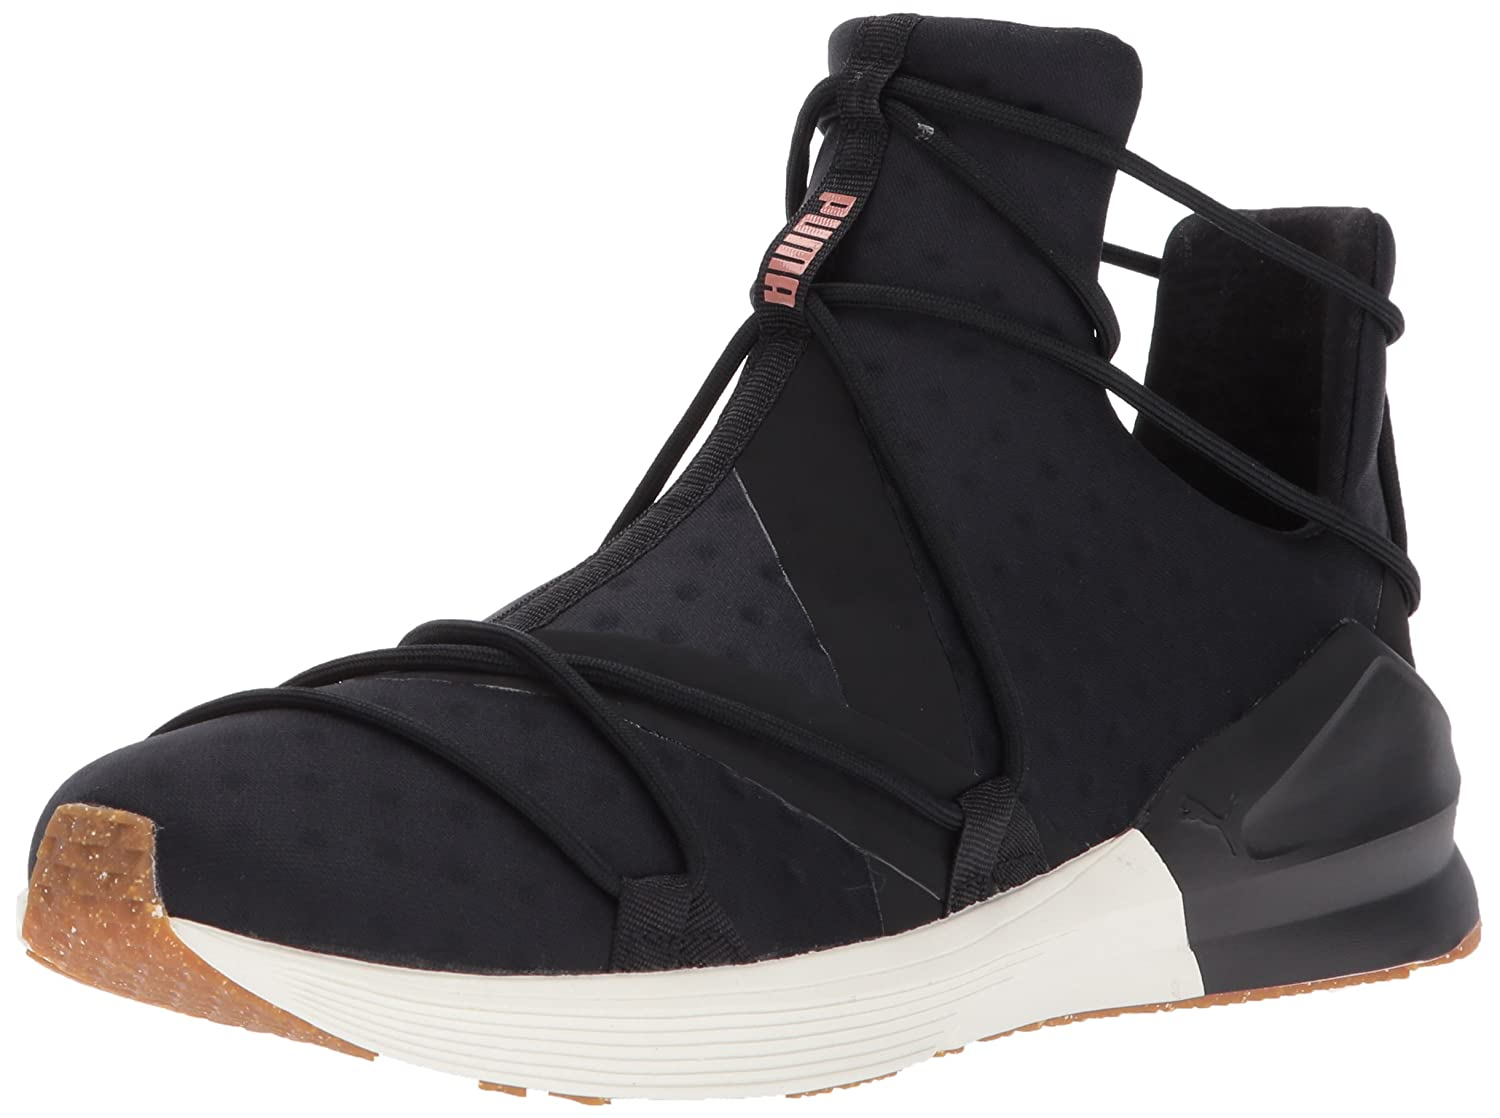 Puma Pour Chaussures Fierce White Rope VR Black/Whisper Pour Femme Puma Black/Whisper White e519b89 - latesttechnology.space